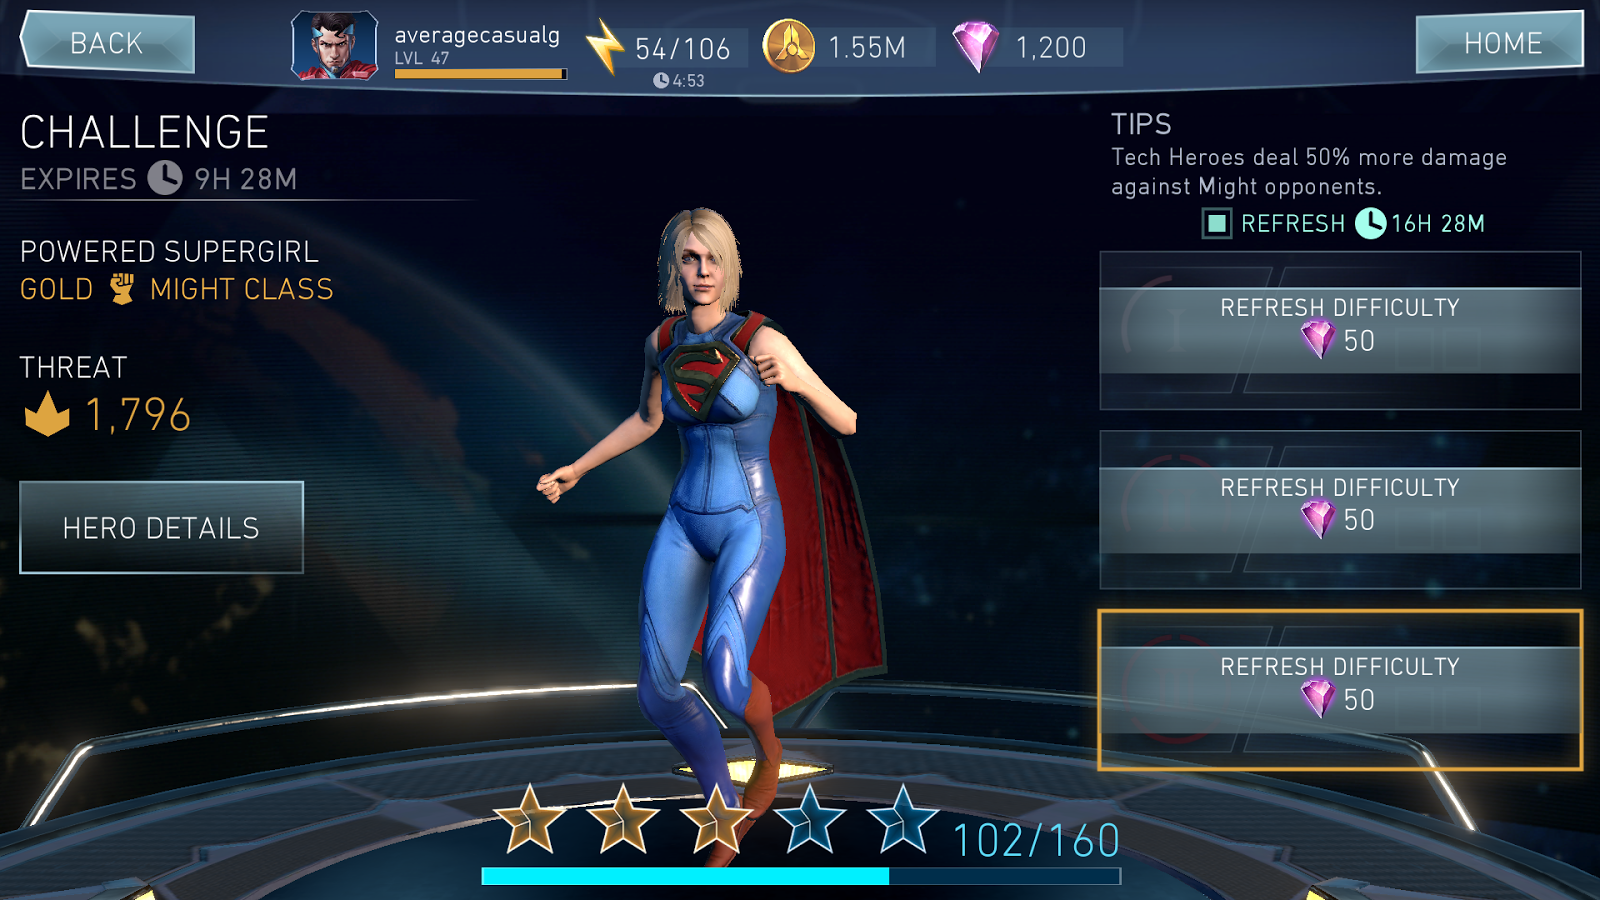 Gems, Promo and Hero, an injustice 2 mobile quick guide